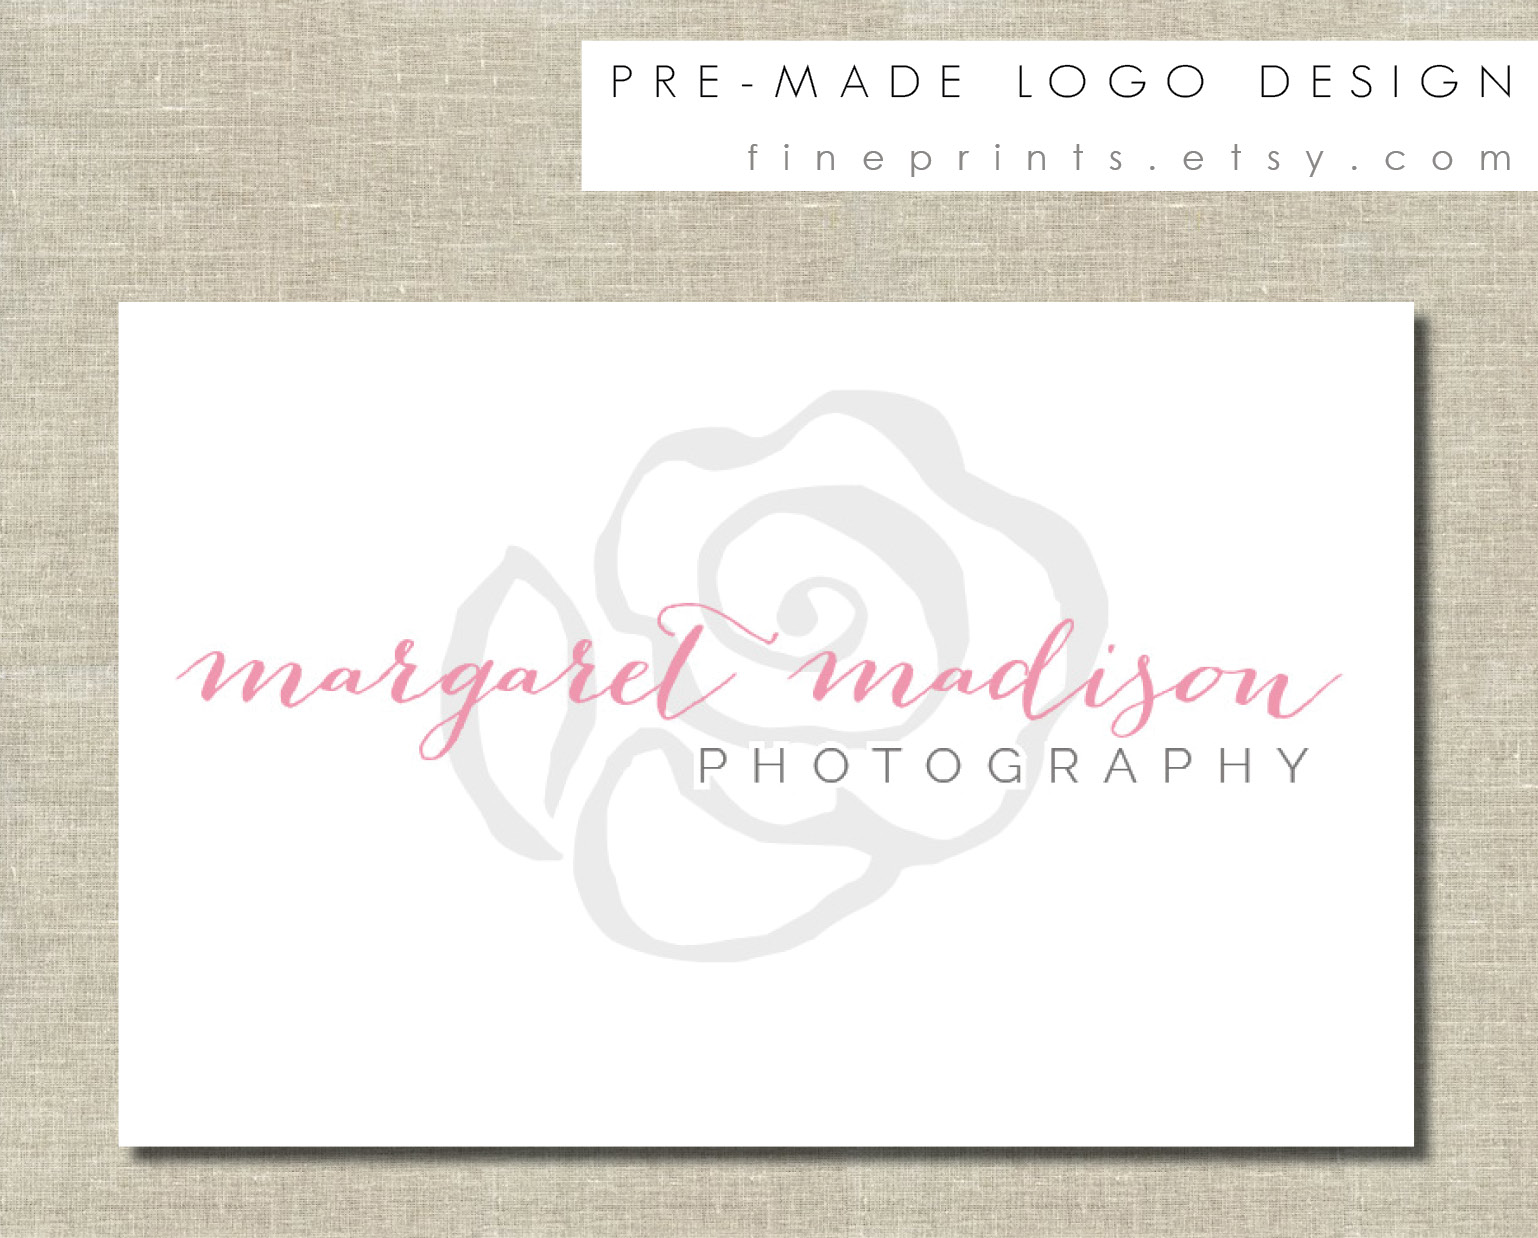 MM Photo premade logo design sample for etsy.jpg